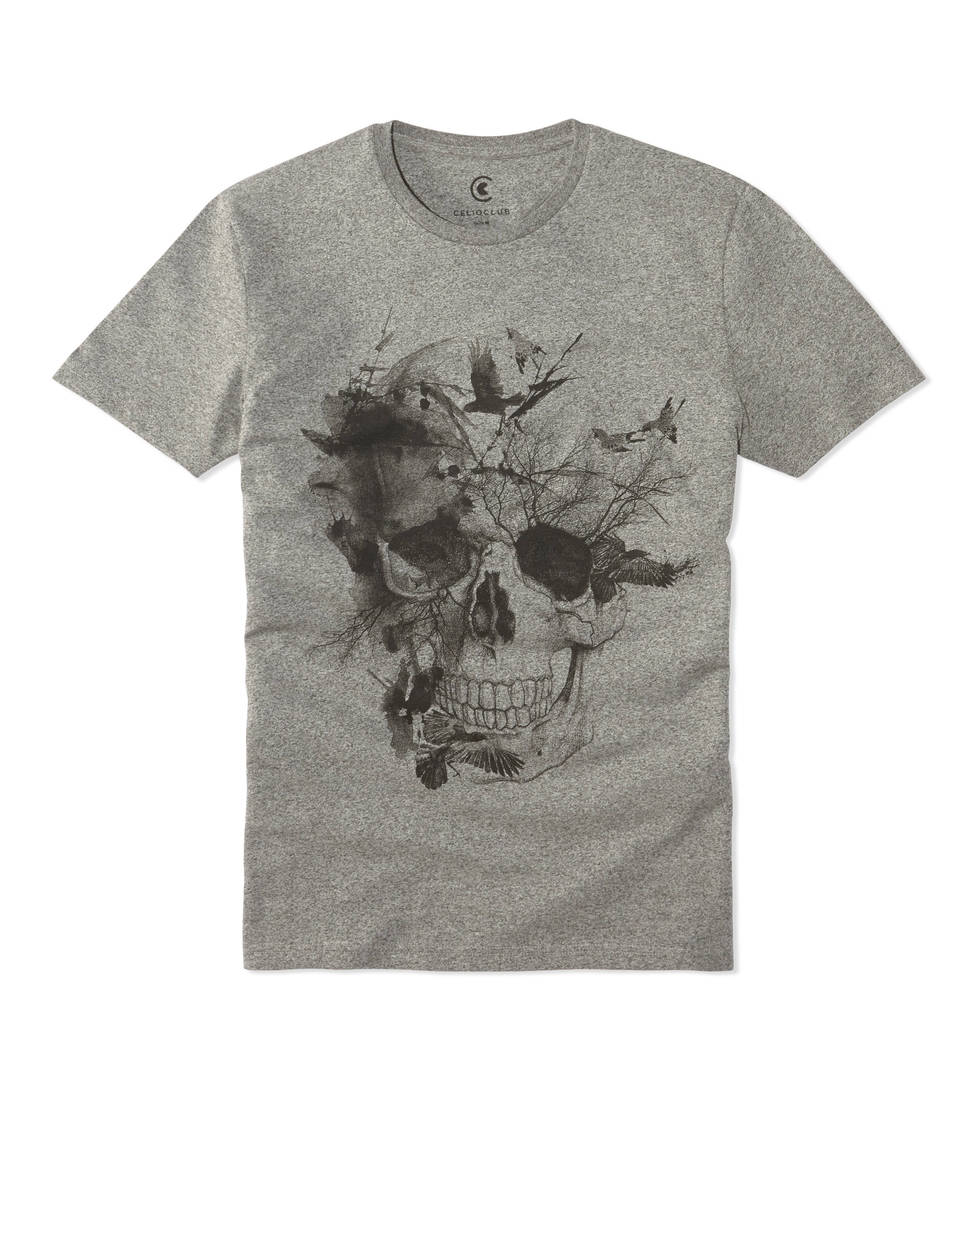 t shirt col rond print t te de mort et fleurs ateflower celio france. Black Bedroom Furniture Sets. Home Design Ideas